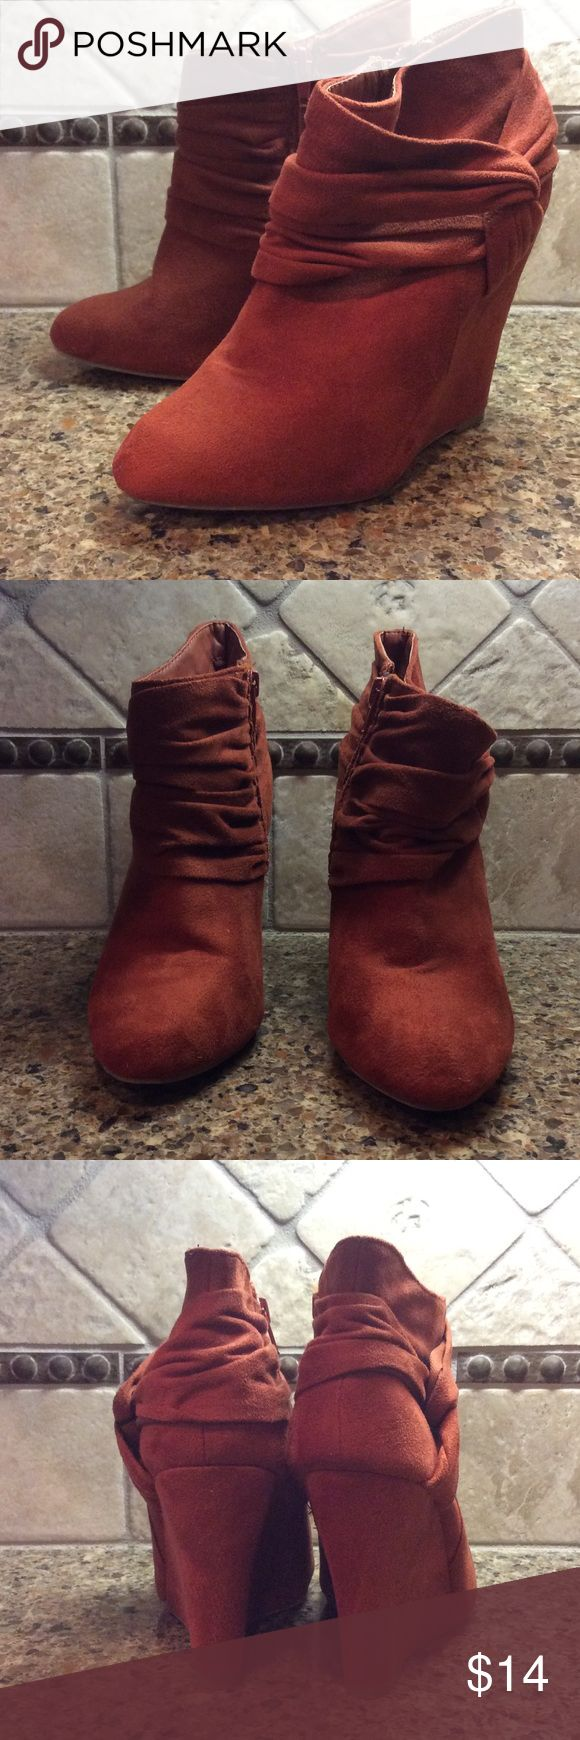 """Cute Rust Colored Ladies Wedge Booties These are so cute and fashionable right now! In marvelous condition, these booties feature a 4"""" wedge heel & inside zipper.  Worn only once! Charlotte Russe Shoes Ankle Boots & Booties"""